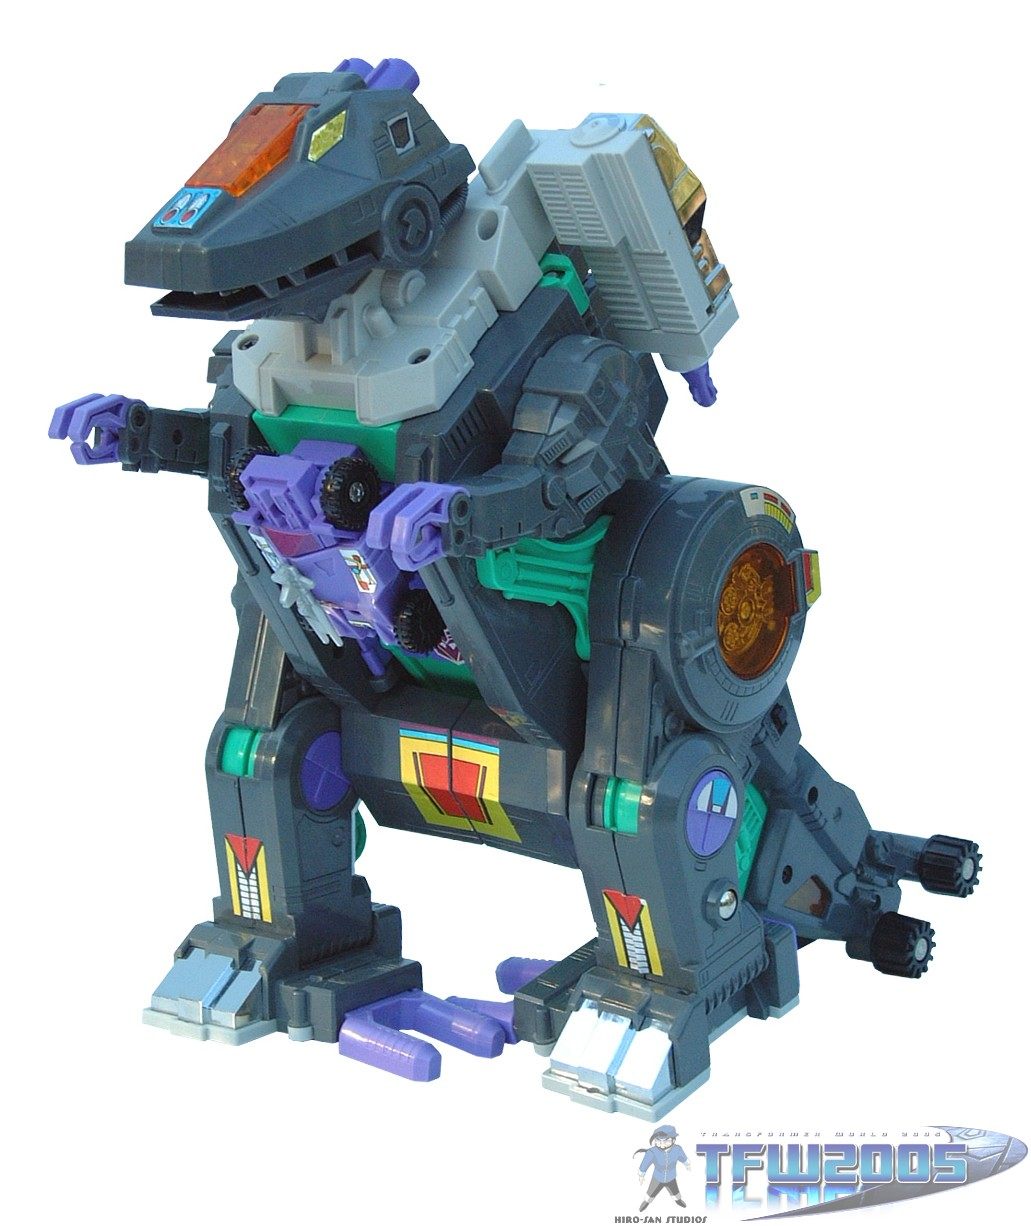 Trypticon Transformers Toys Tfw2005